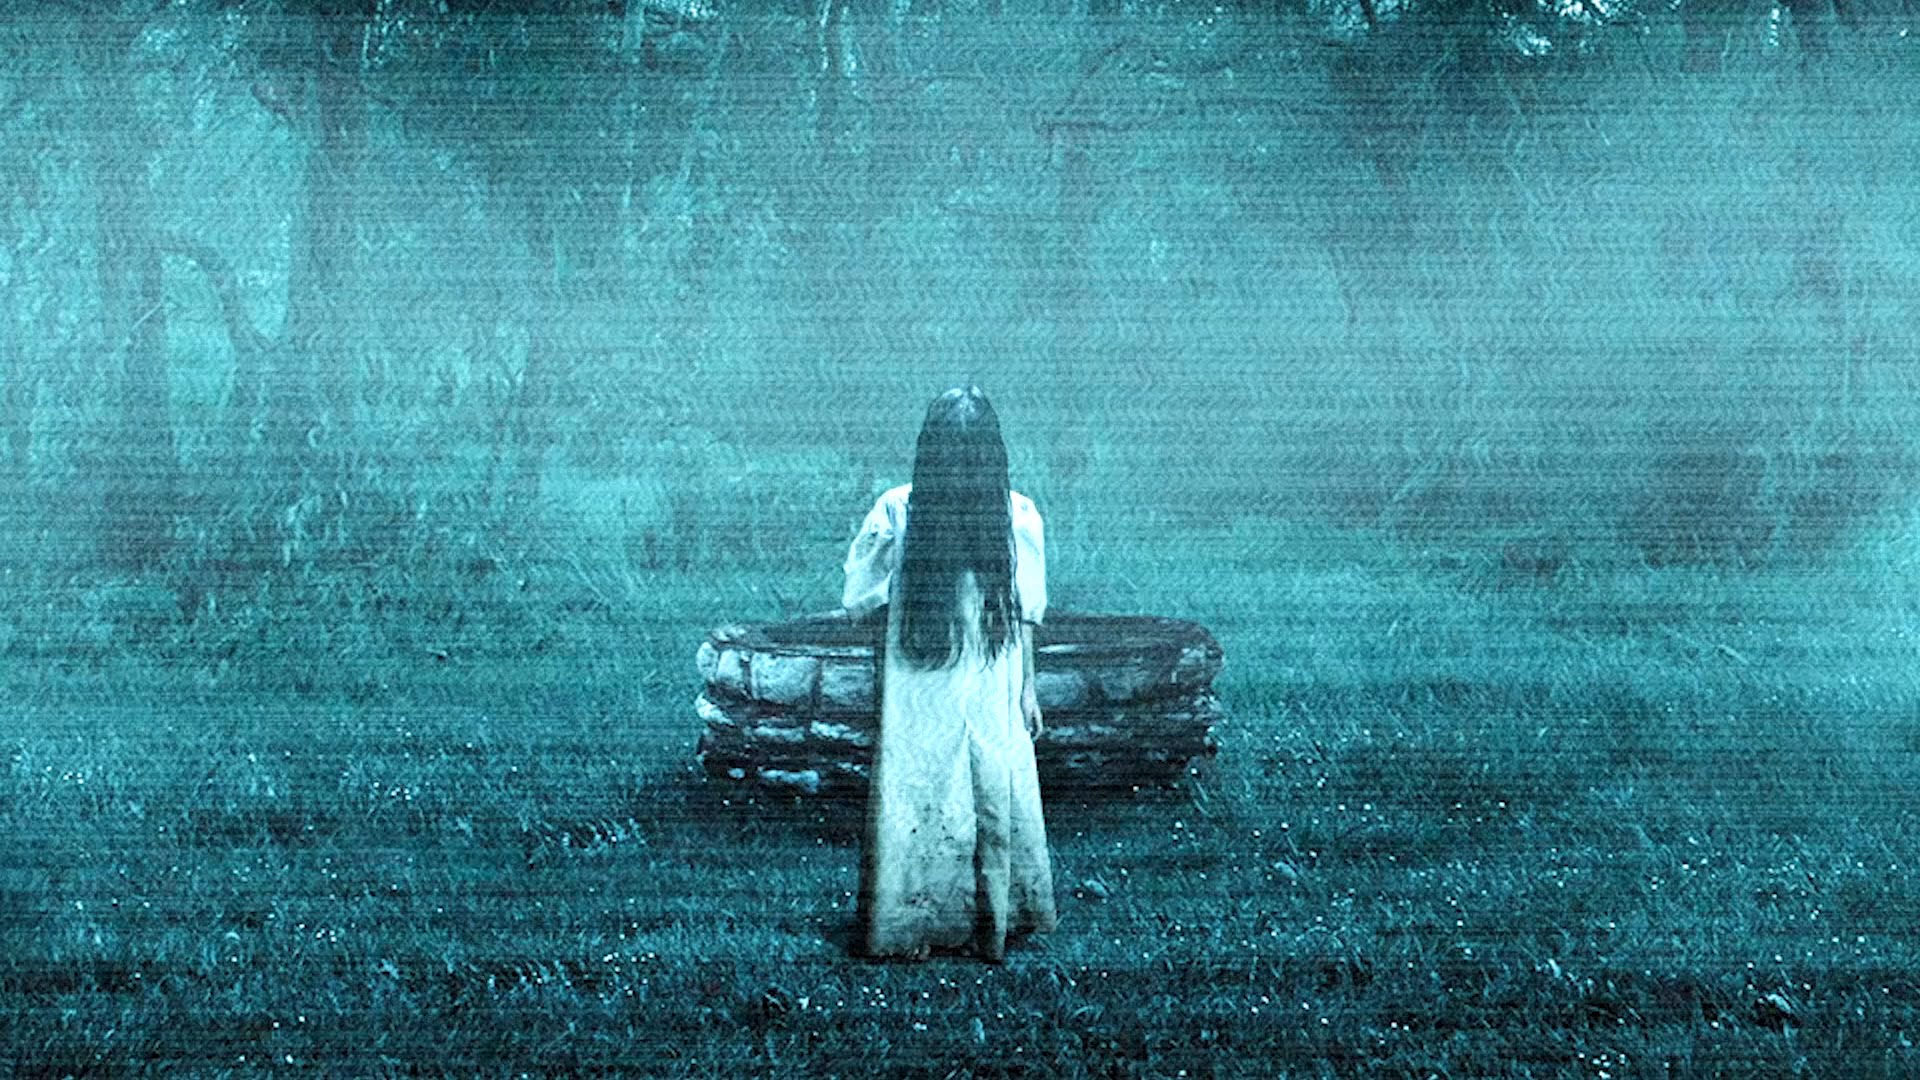 The ring photo